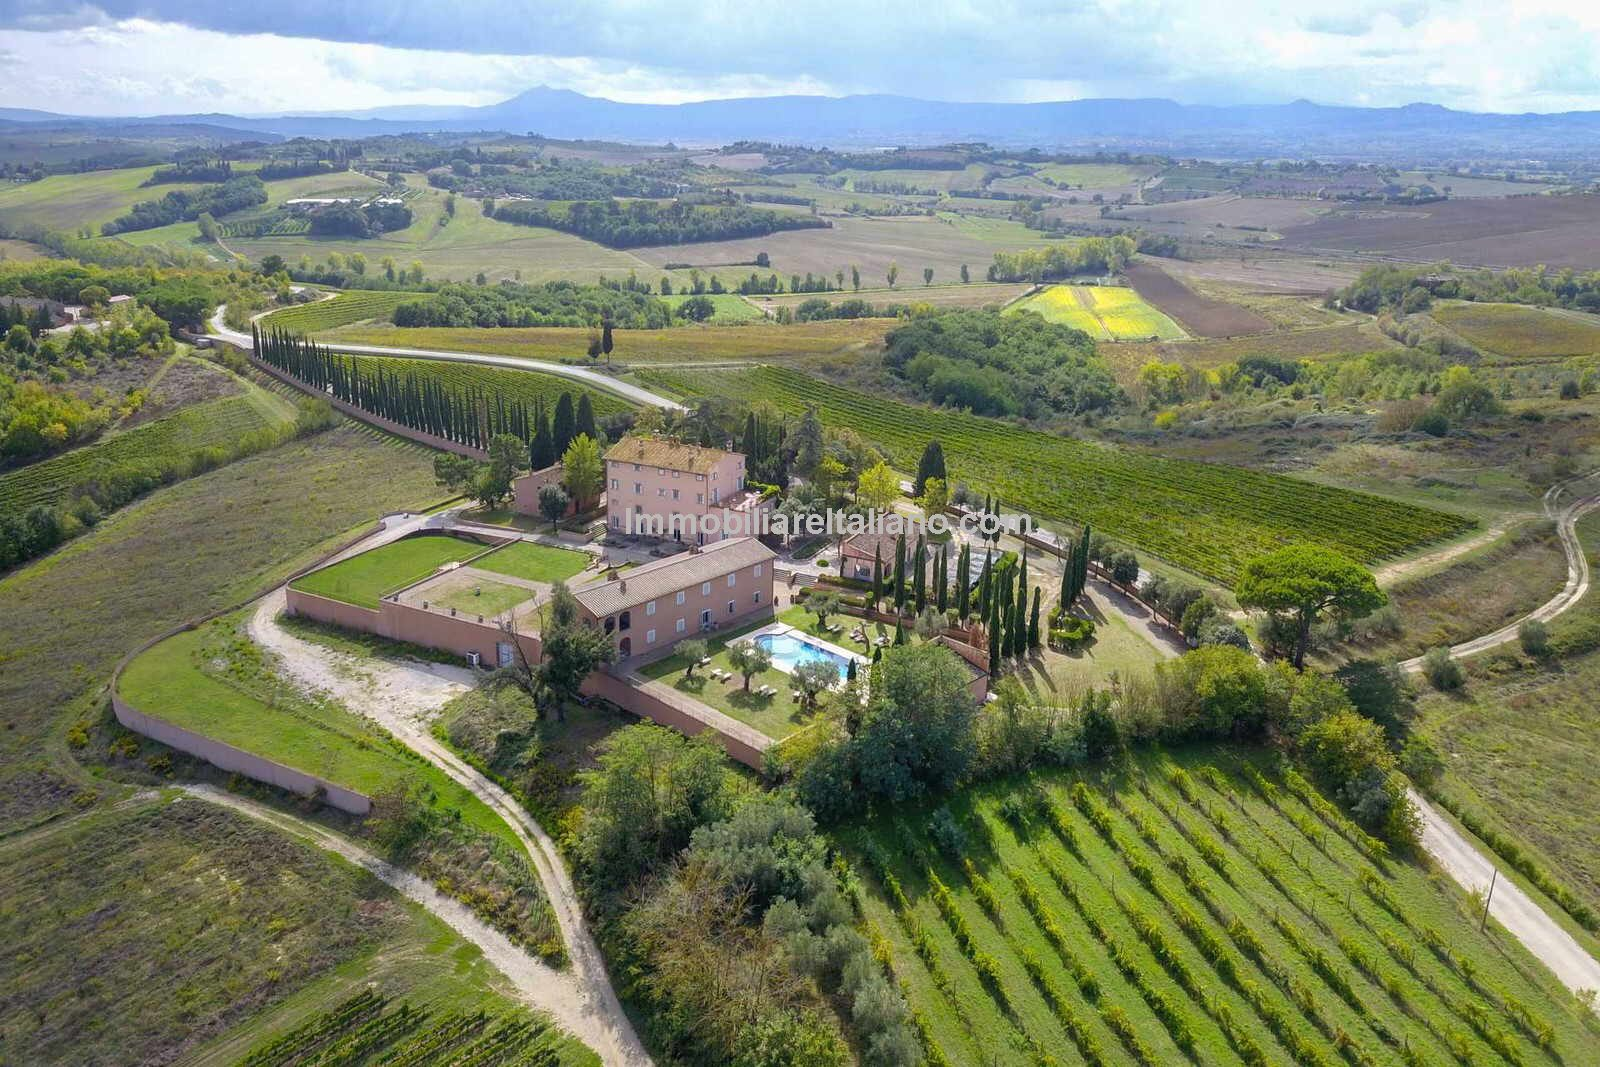 Aerial view of Tuscan Wine estate and buildings